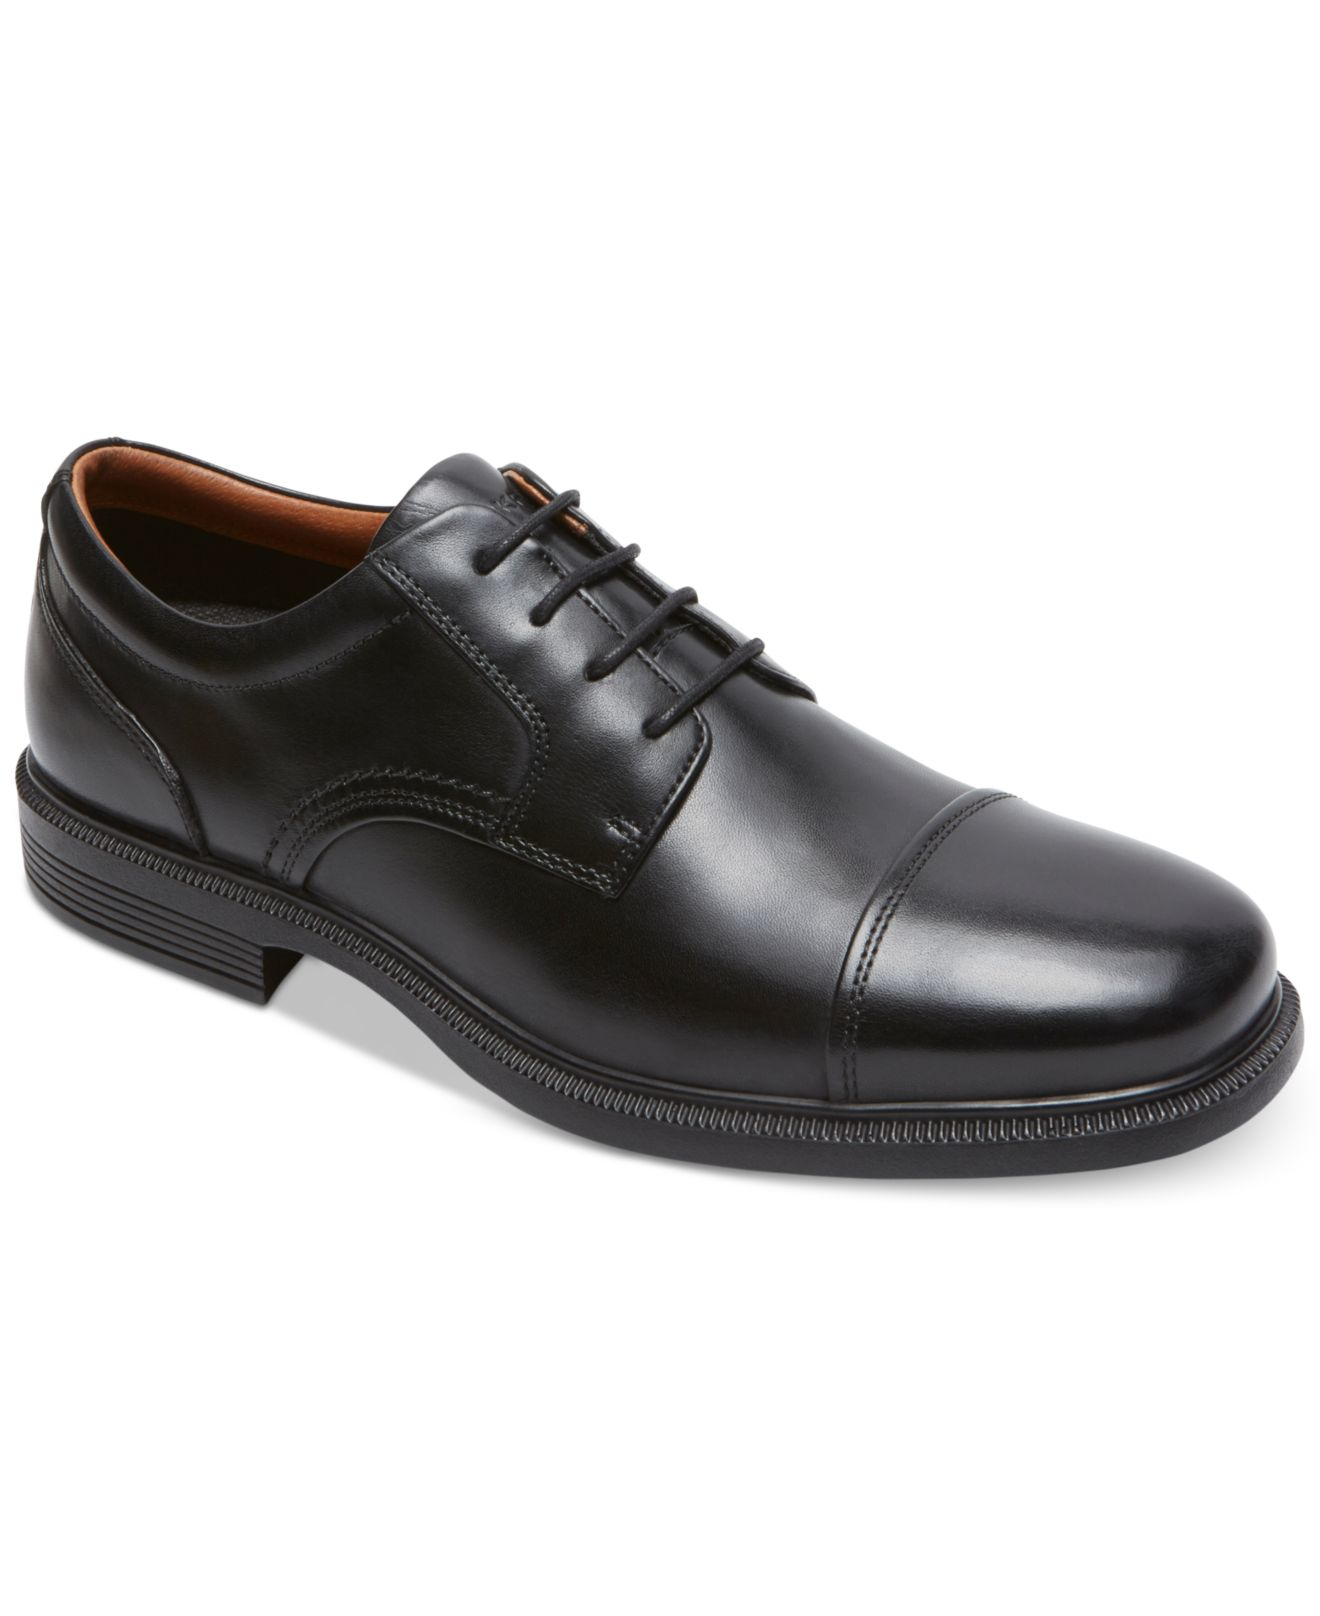 Rockport Men S Dressports Luxe Cap Toe Oxford Shoes In Black For Men Lyst